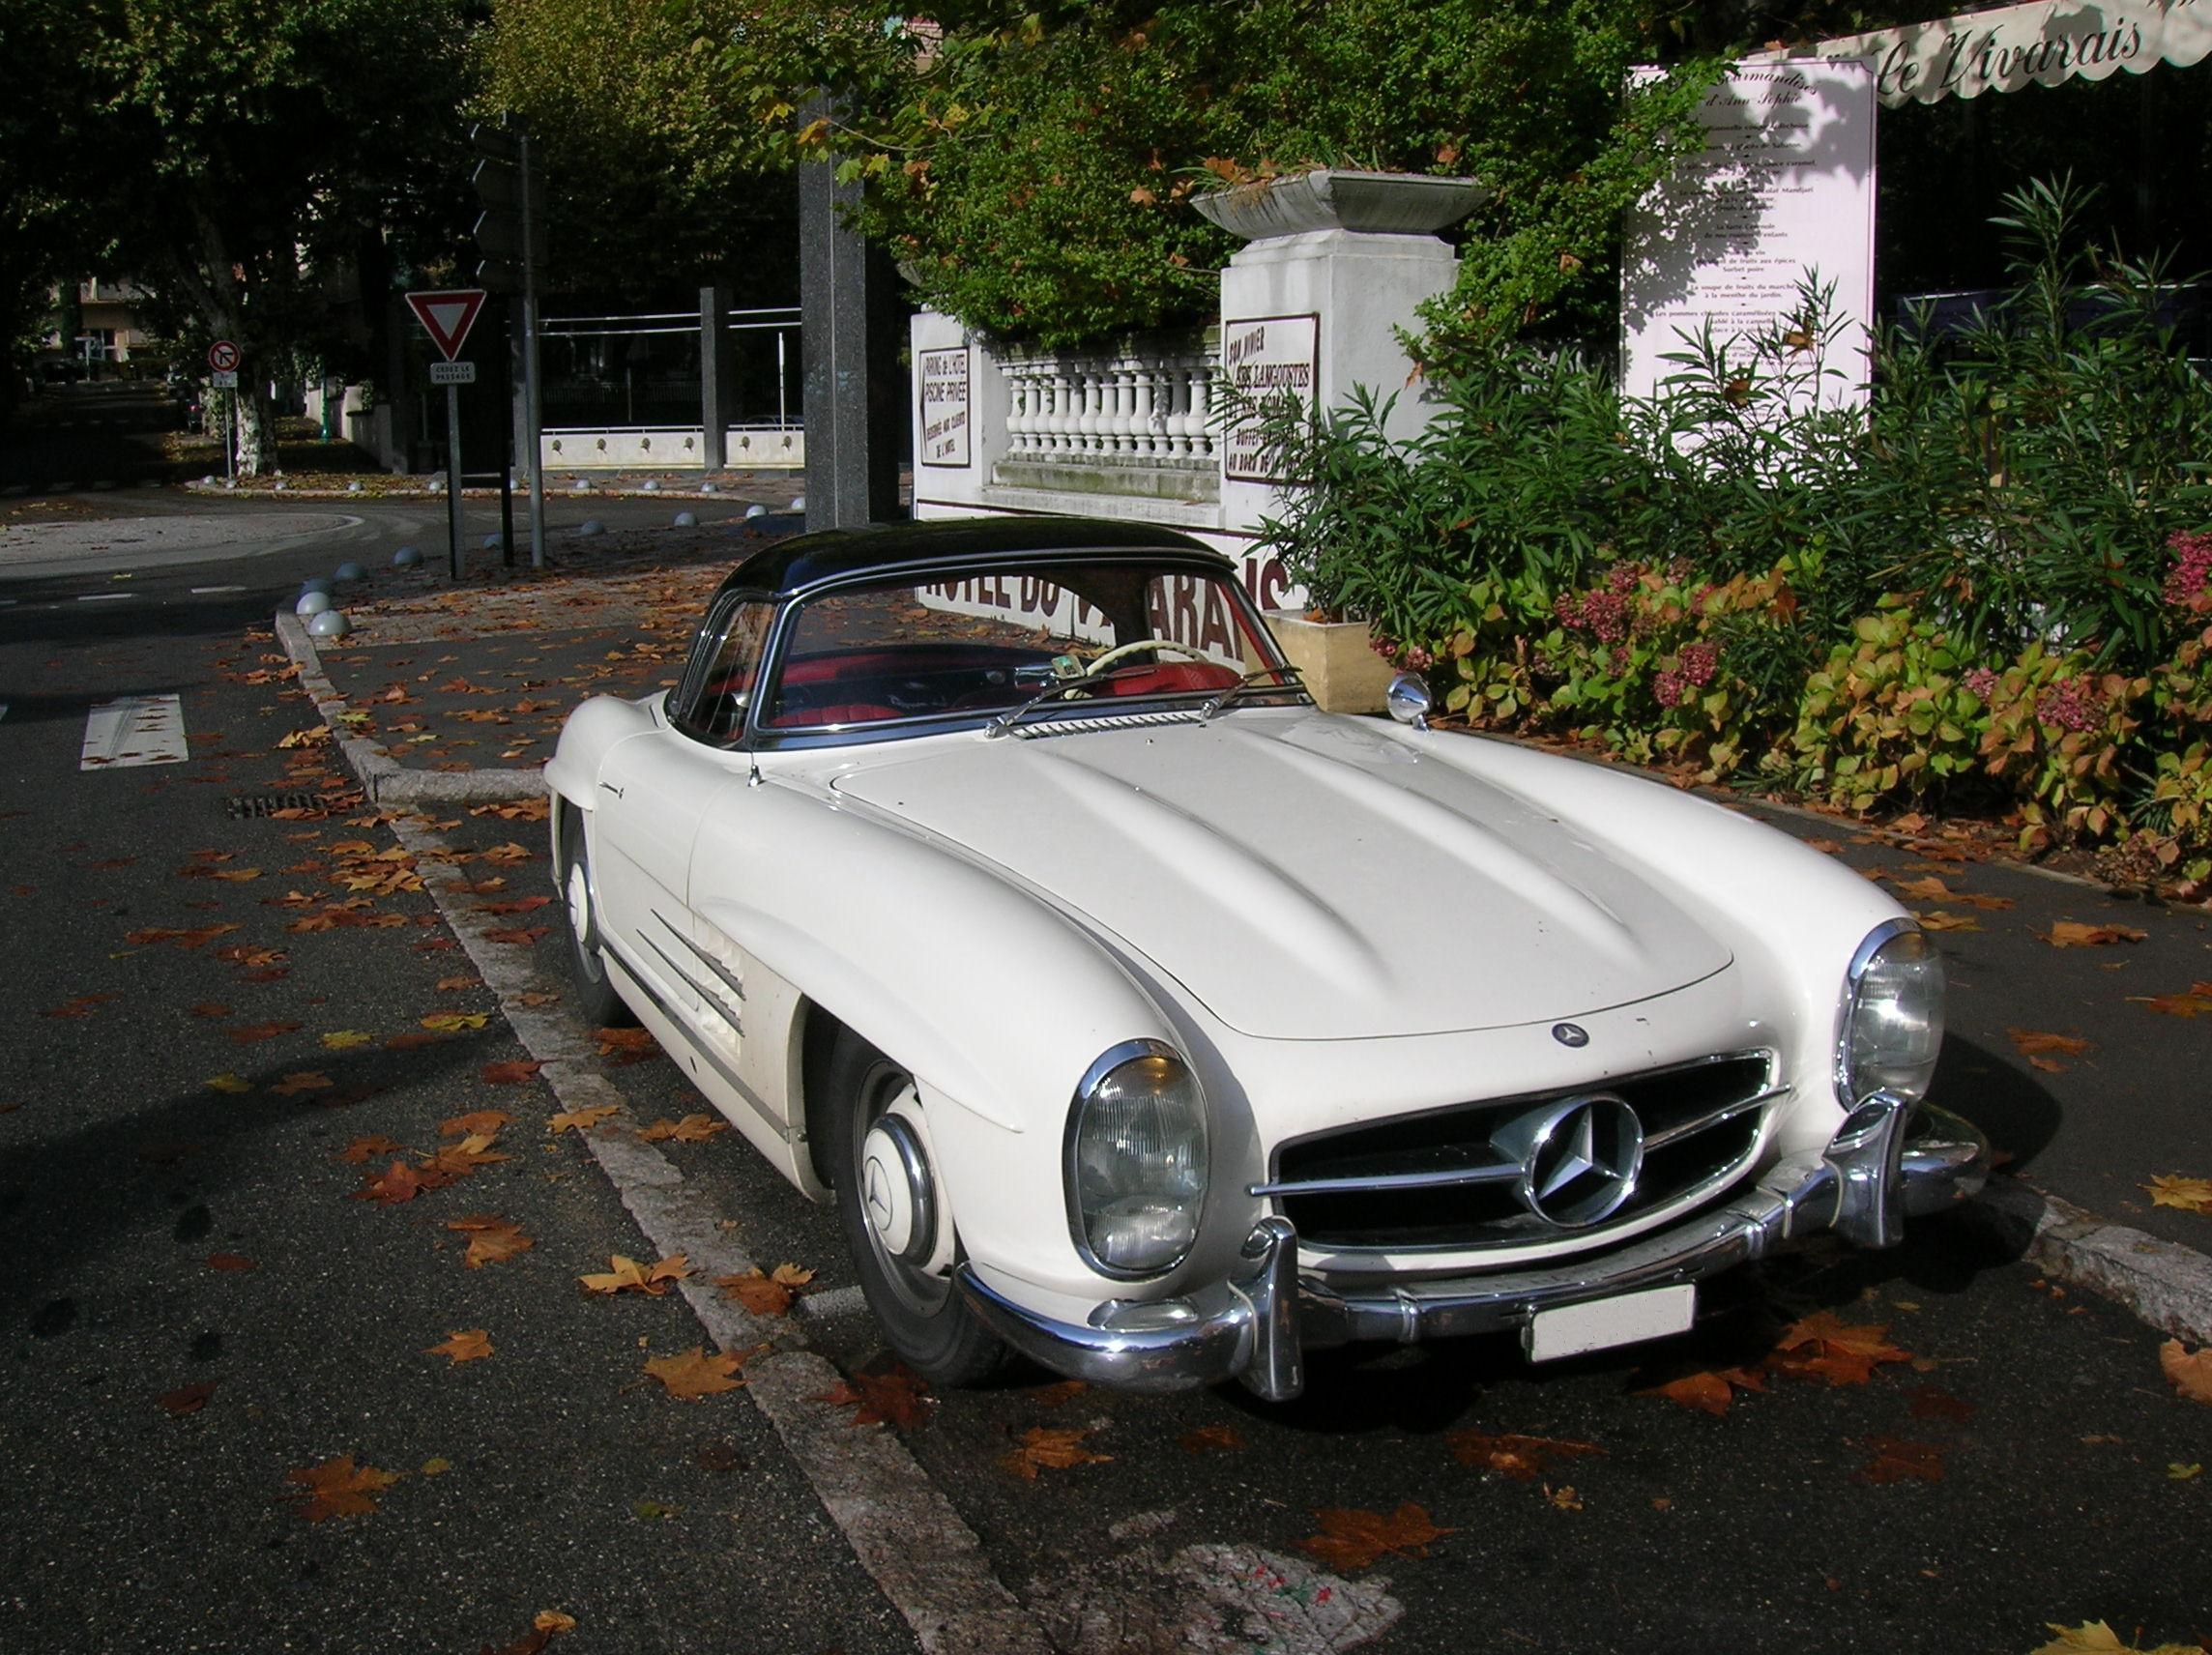 File 0511 Mercedes 500 SL coup C3 A9 1 moreover Wallpaper 62 also bhbenz besides Wallpaper 67 furthermore Mercedes Benz Sl 500 In The Body Of A Sl 65 Amg 12332. on mercedes benz sl 500